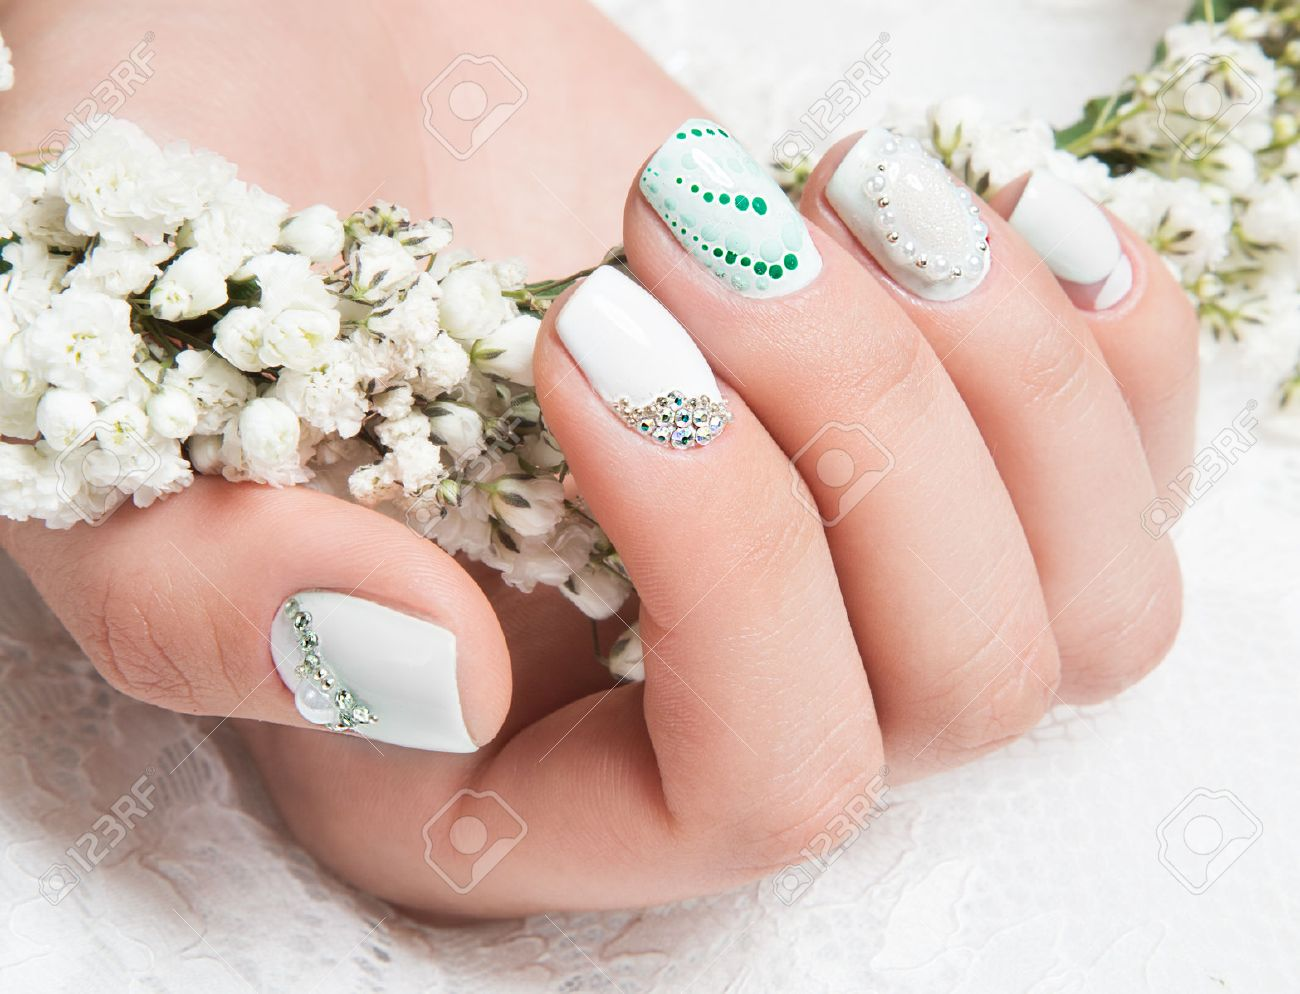 Wedding manicure for the bride in gentle tones with flowers. Nail Design. - 44698456